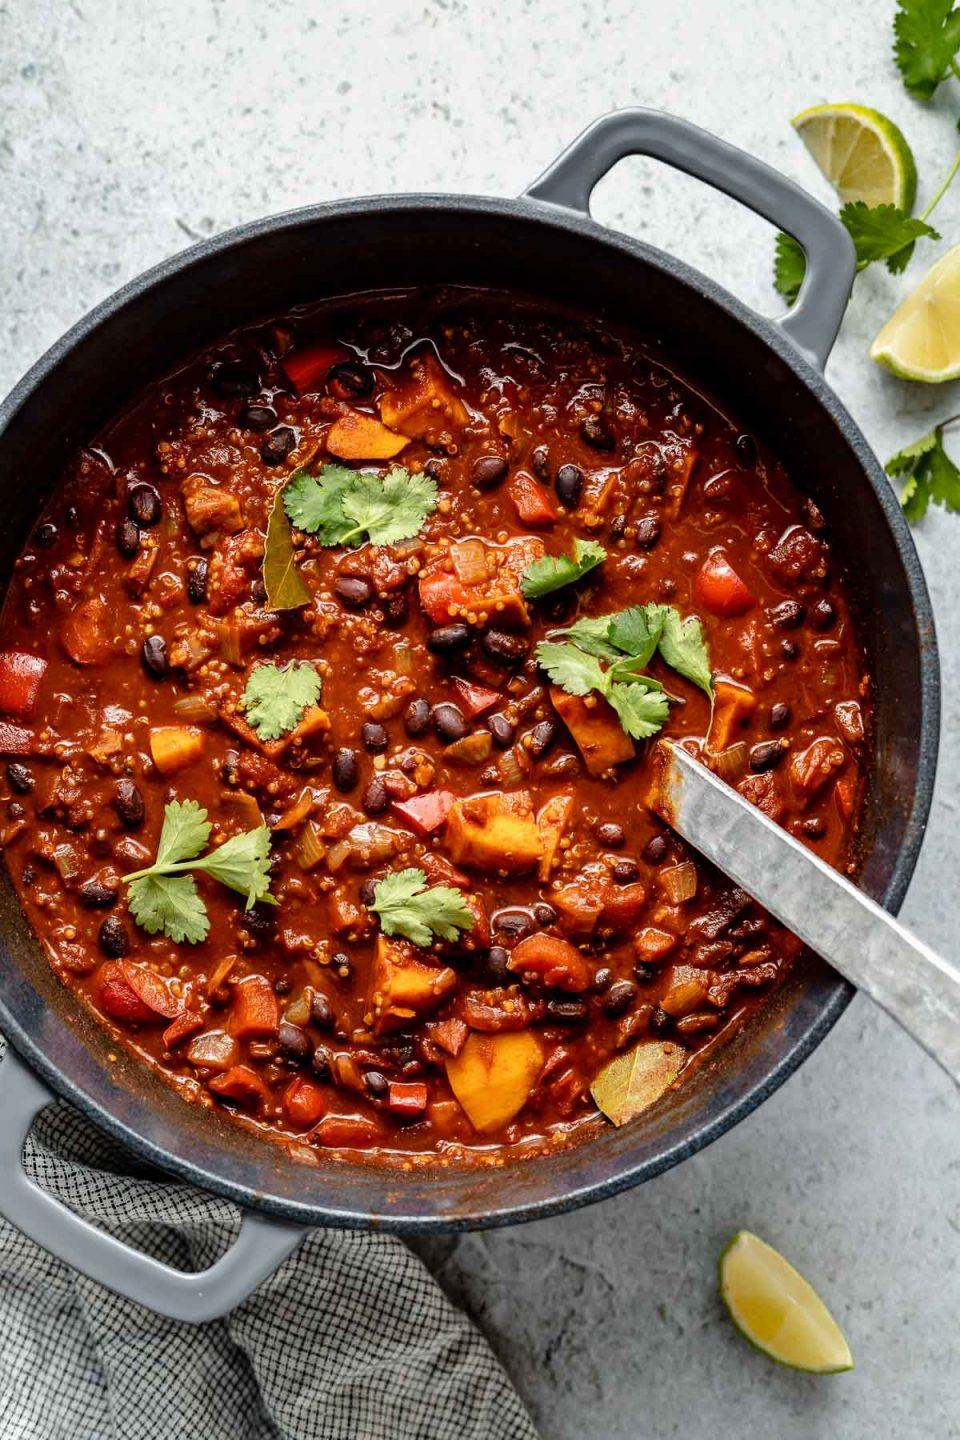 Sweet Potato Quinoa Chili in a large gray Dutch oven, topped with fresh cilantro leaves. The Dutch oven sits atop a light blue surface, next to a checkered black & white linen & lime wedges.